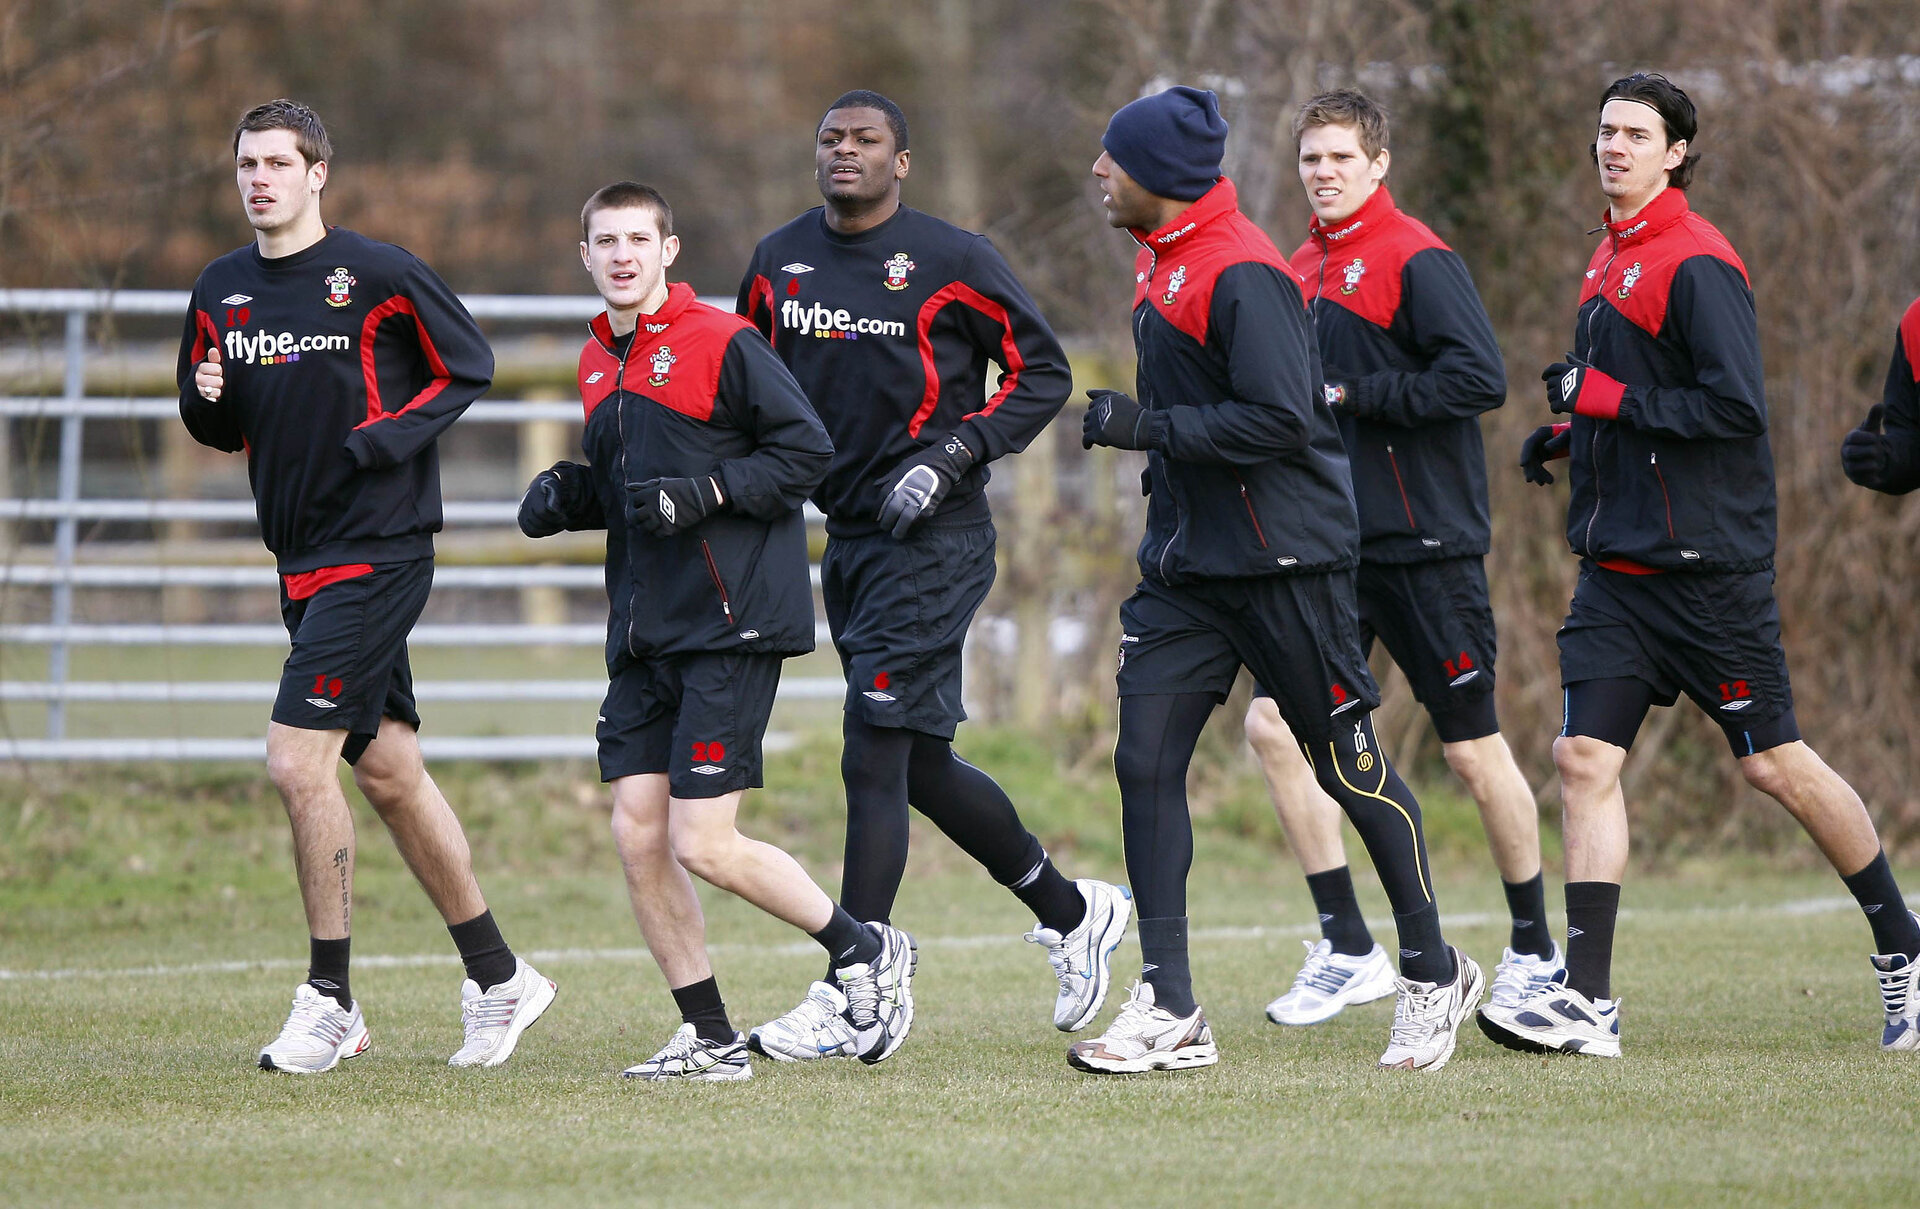 Football - Southampton Training - Southampton Training Ground - 09/10 - 11/2/10  (L-R) Southampton's Morgan Schneiderlin, Adam Lallana, Radhi Jaidi, Wayne Thomas Dean Hammond and Jose Fonte during training  Mandatory Credit: Action Images / Peter Cziborra  Livepic Football - Southampton Training - Southampton Training Ground - 09/10 - 11/2/10 (L-R) Southampton's Morgan Schneiderlin, Adam Lallana, Radhi Jaidi, Wayne Thomas Dean Hammond and Jose Fonte during training Mandatory Credit: Action Images / Peter Cziborra Livepic